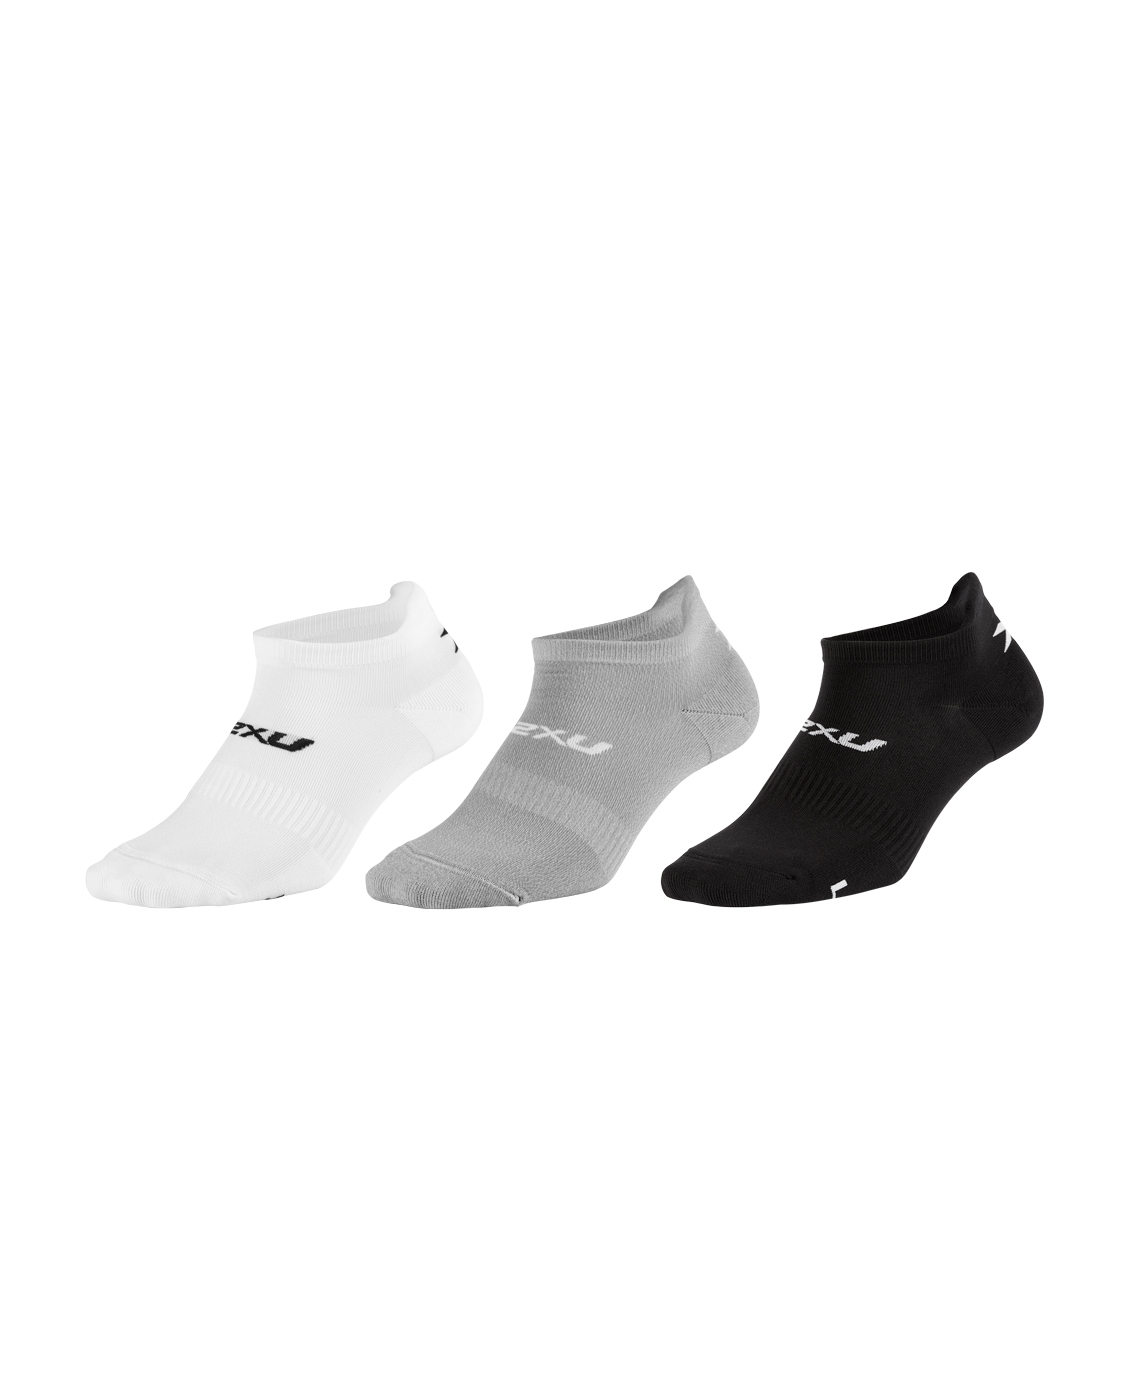 2XU Unisex Ankle Sock 3 Pack - Three Color